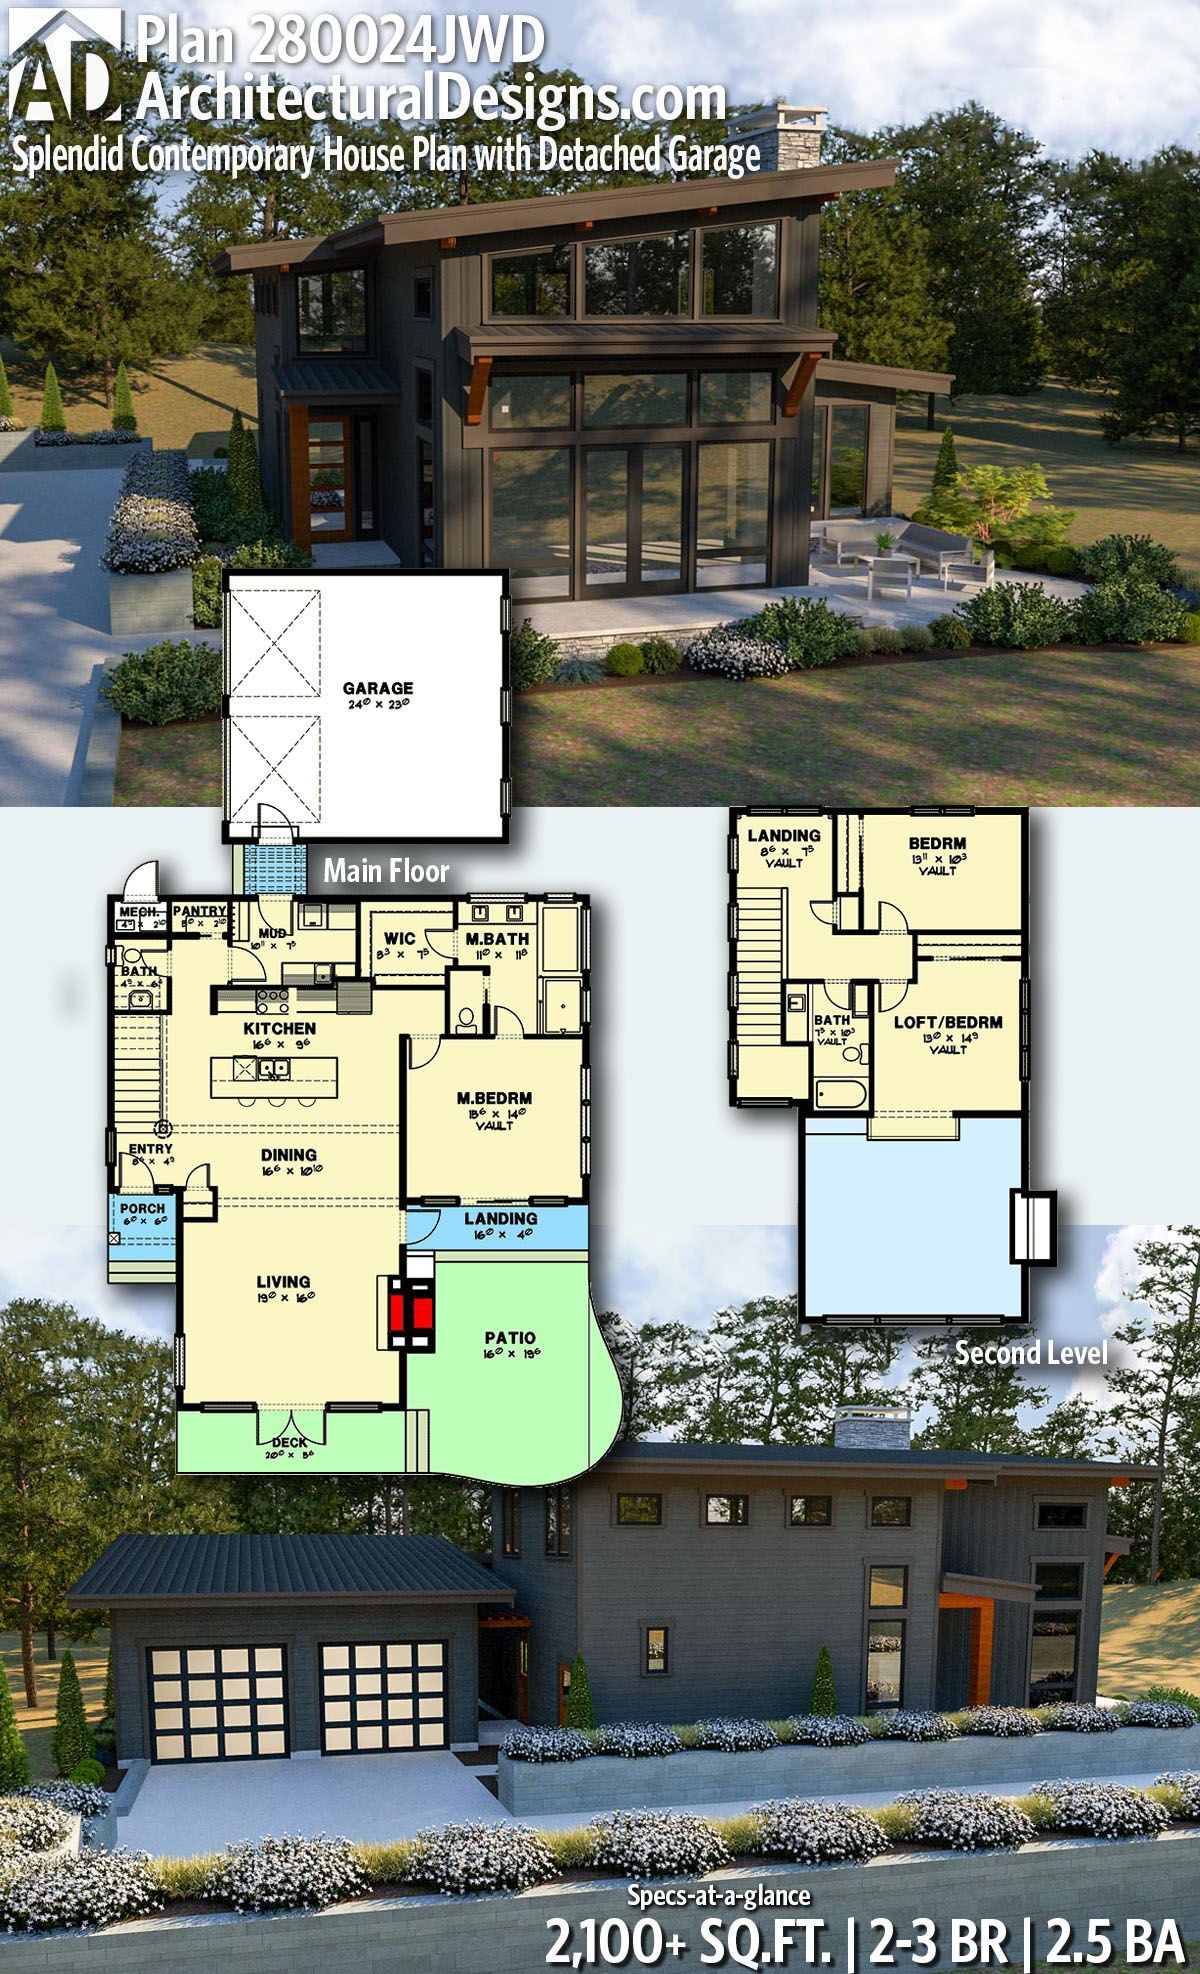 Plan 280024jwd Splendid Contemporary House Plan With Detached Garage Contemporary House Plans Contemporary House Architecture House